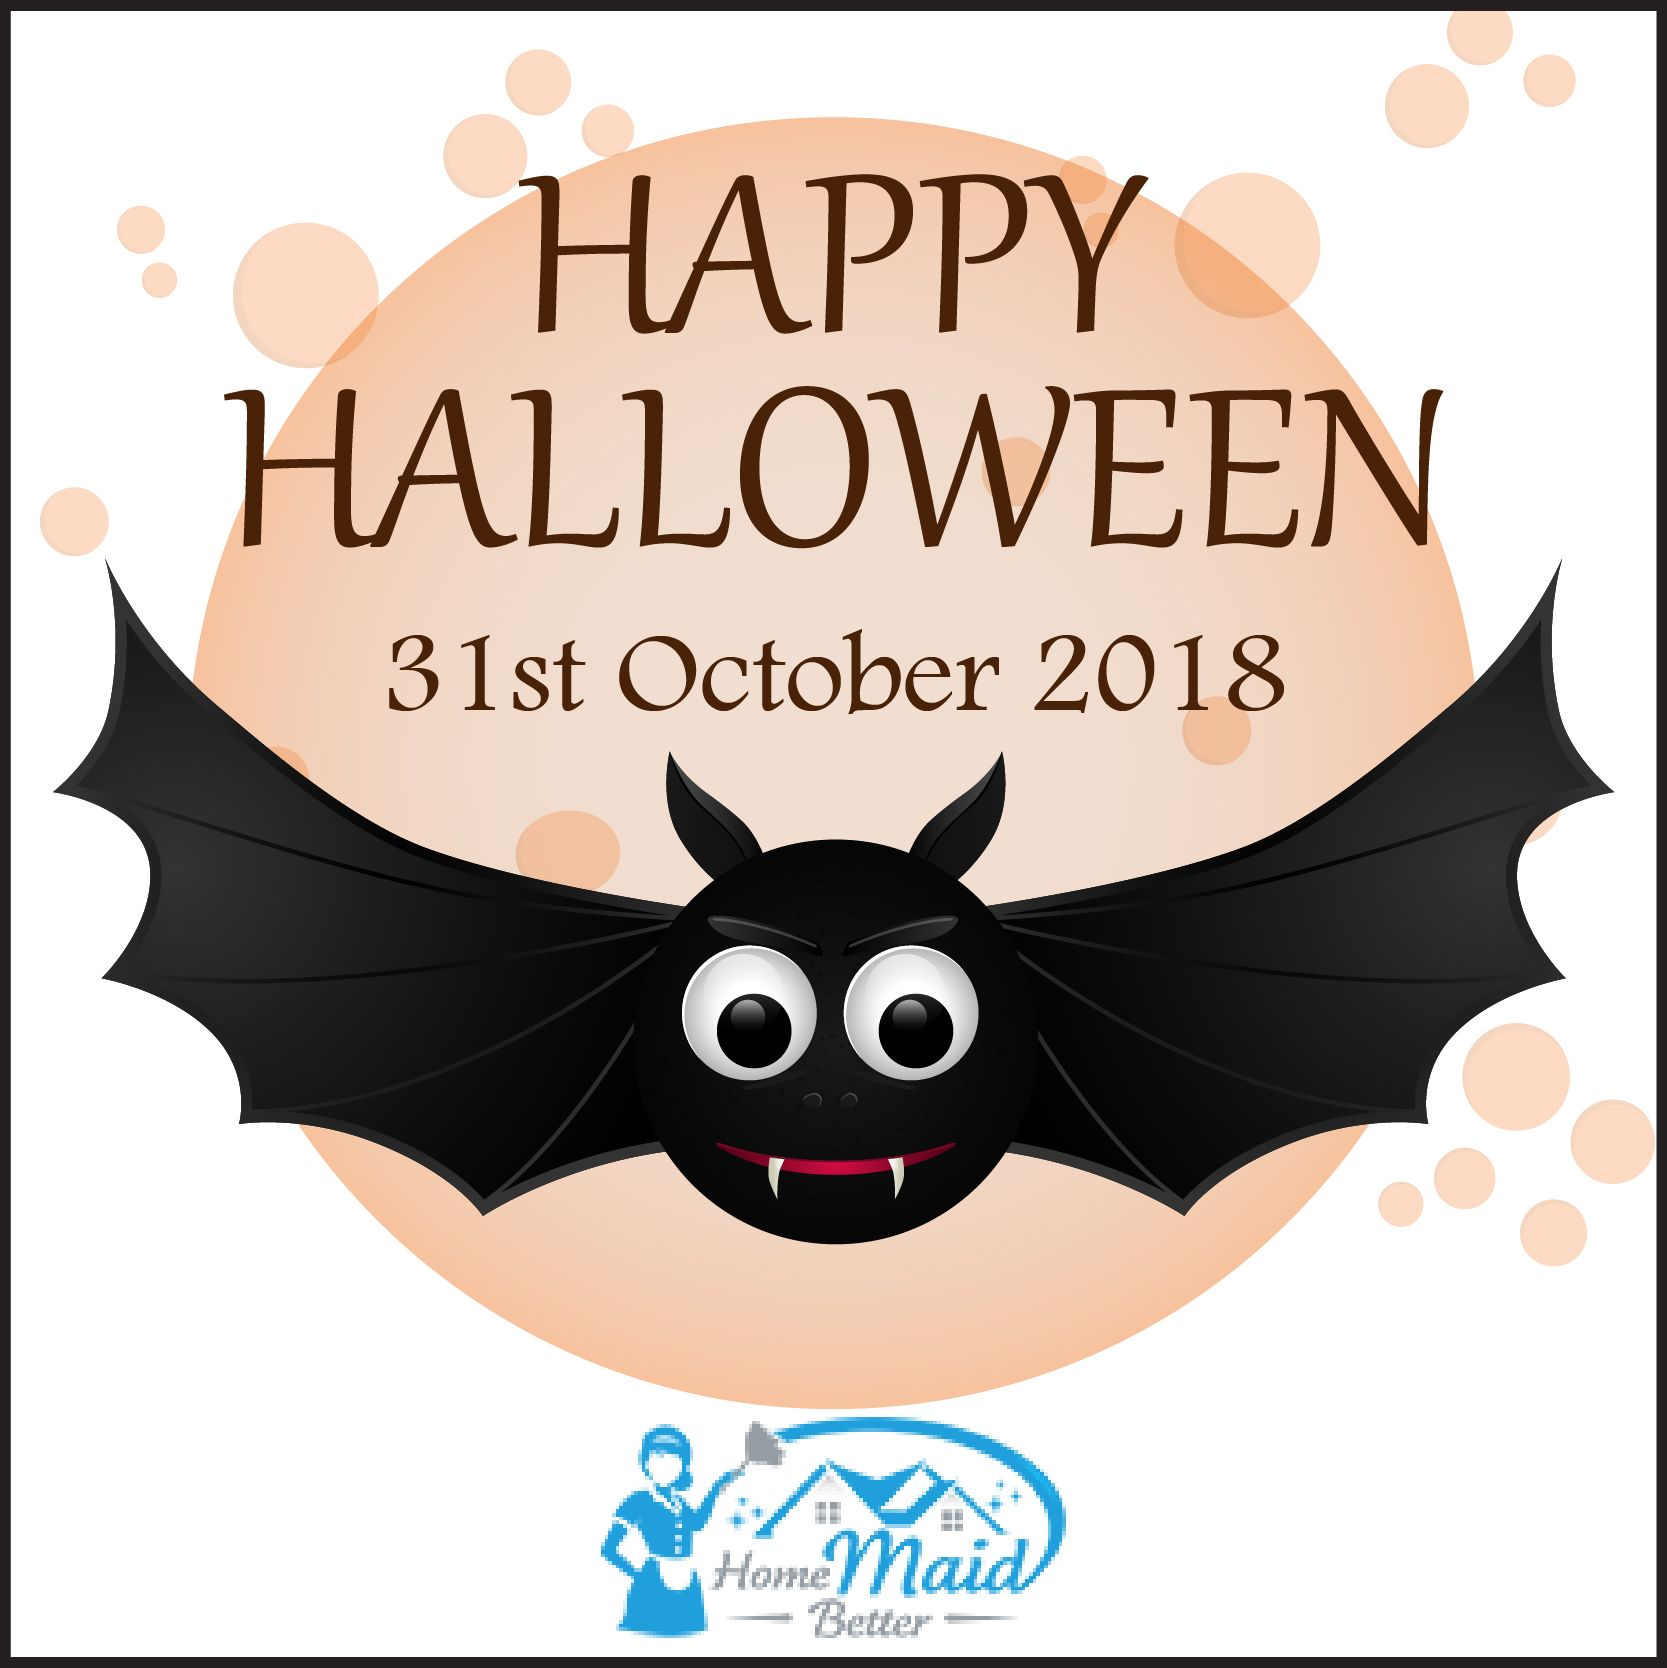 Happy Halloween. Halloween2018 House cleaning services